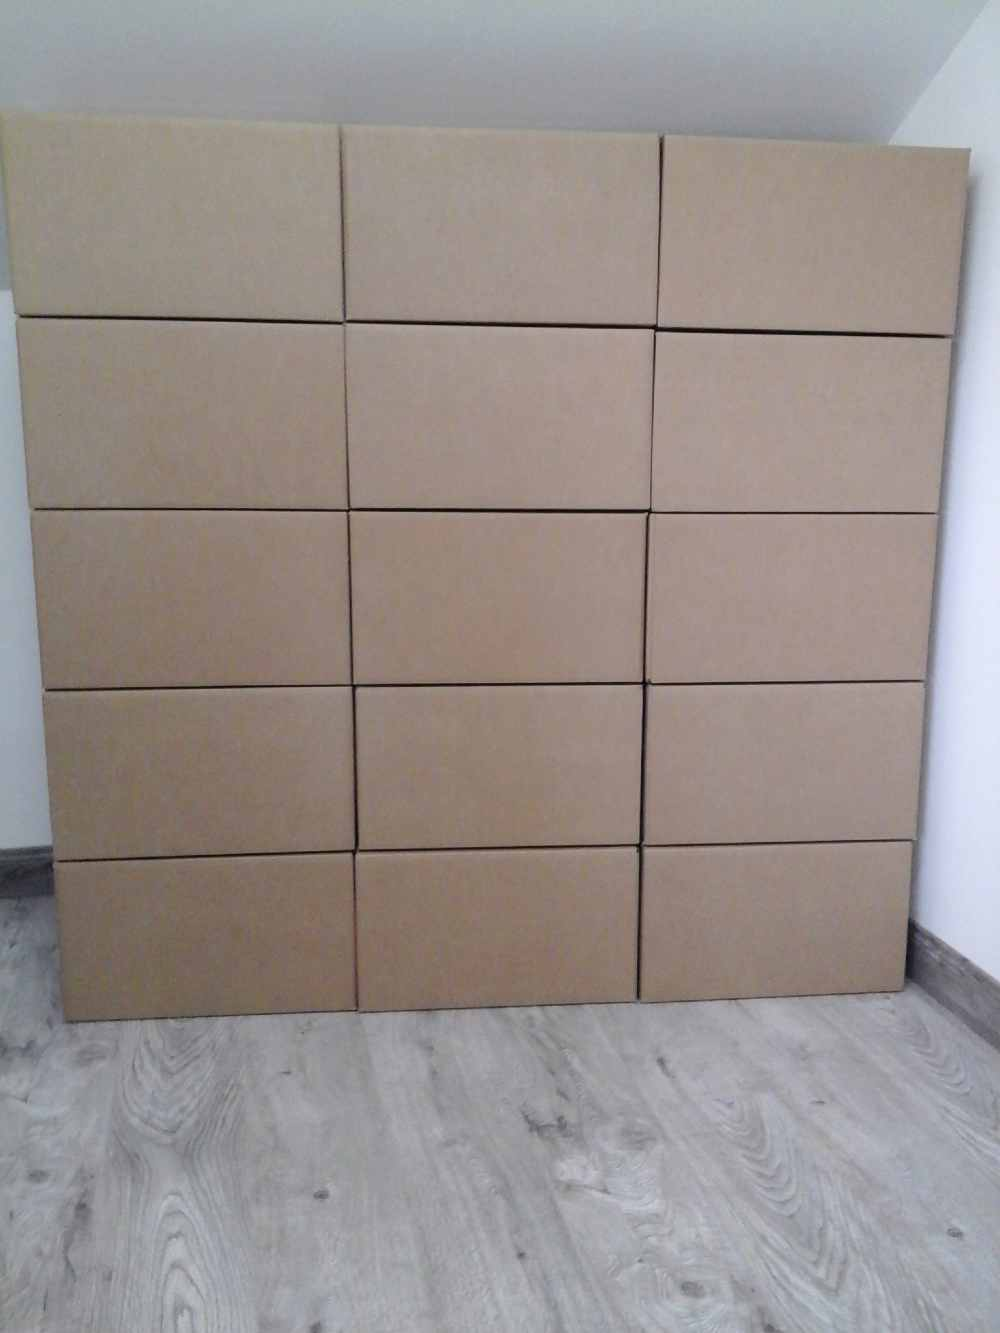 15 large double walled boxes